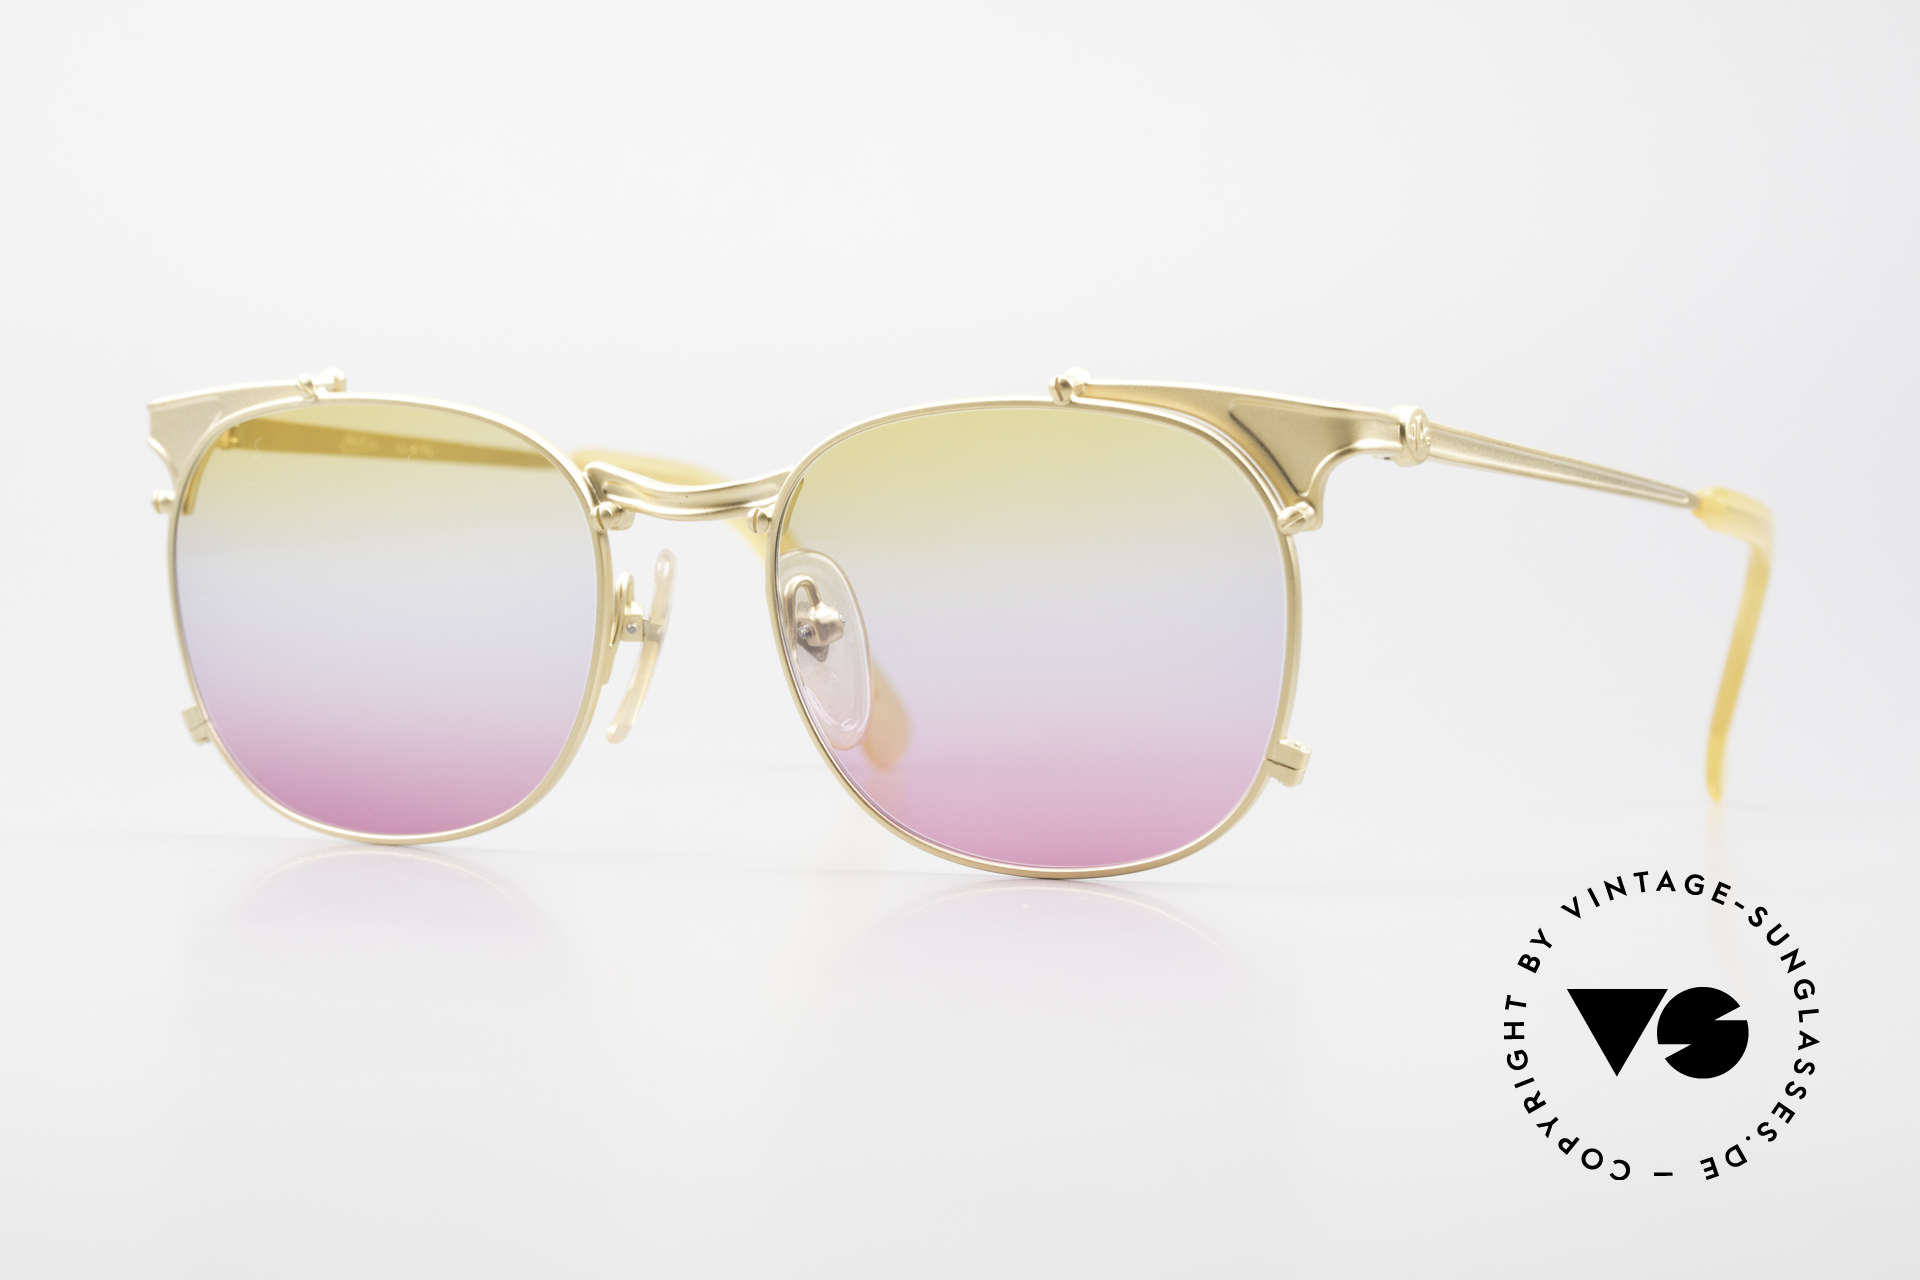 Jean Paul Gaultier 56-2175 Yellow Pink Gradient Lenses, rare vintage JEAN PAUL GAULTIER sunglasses, Made for Men and Women